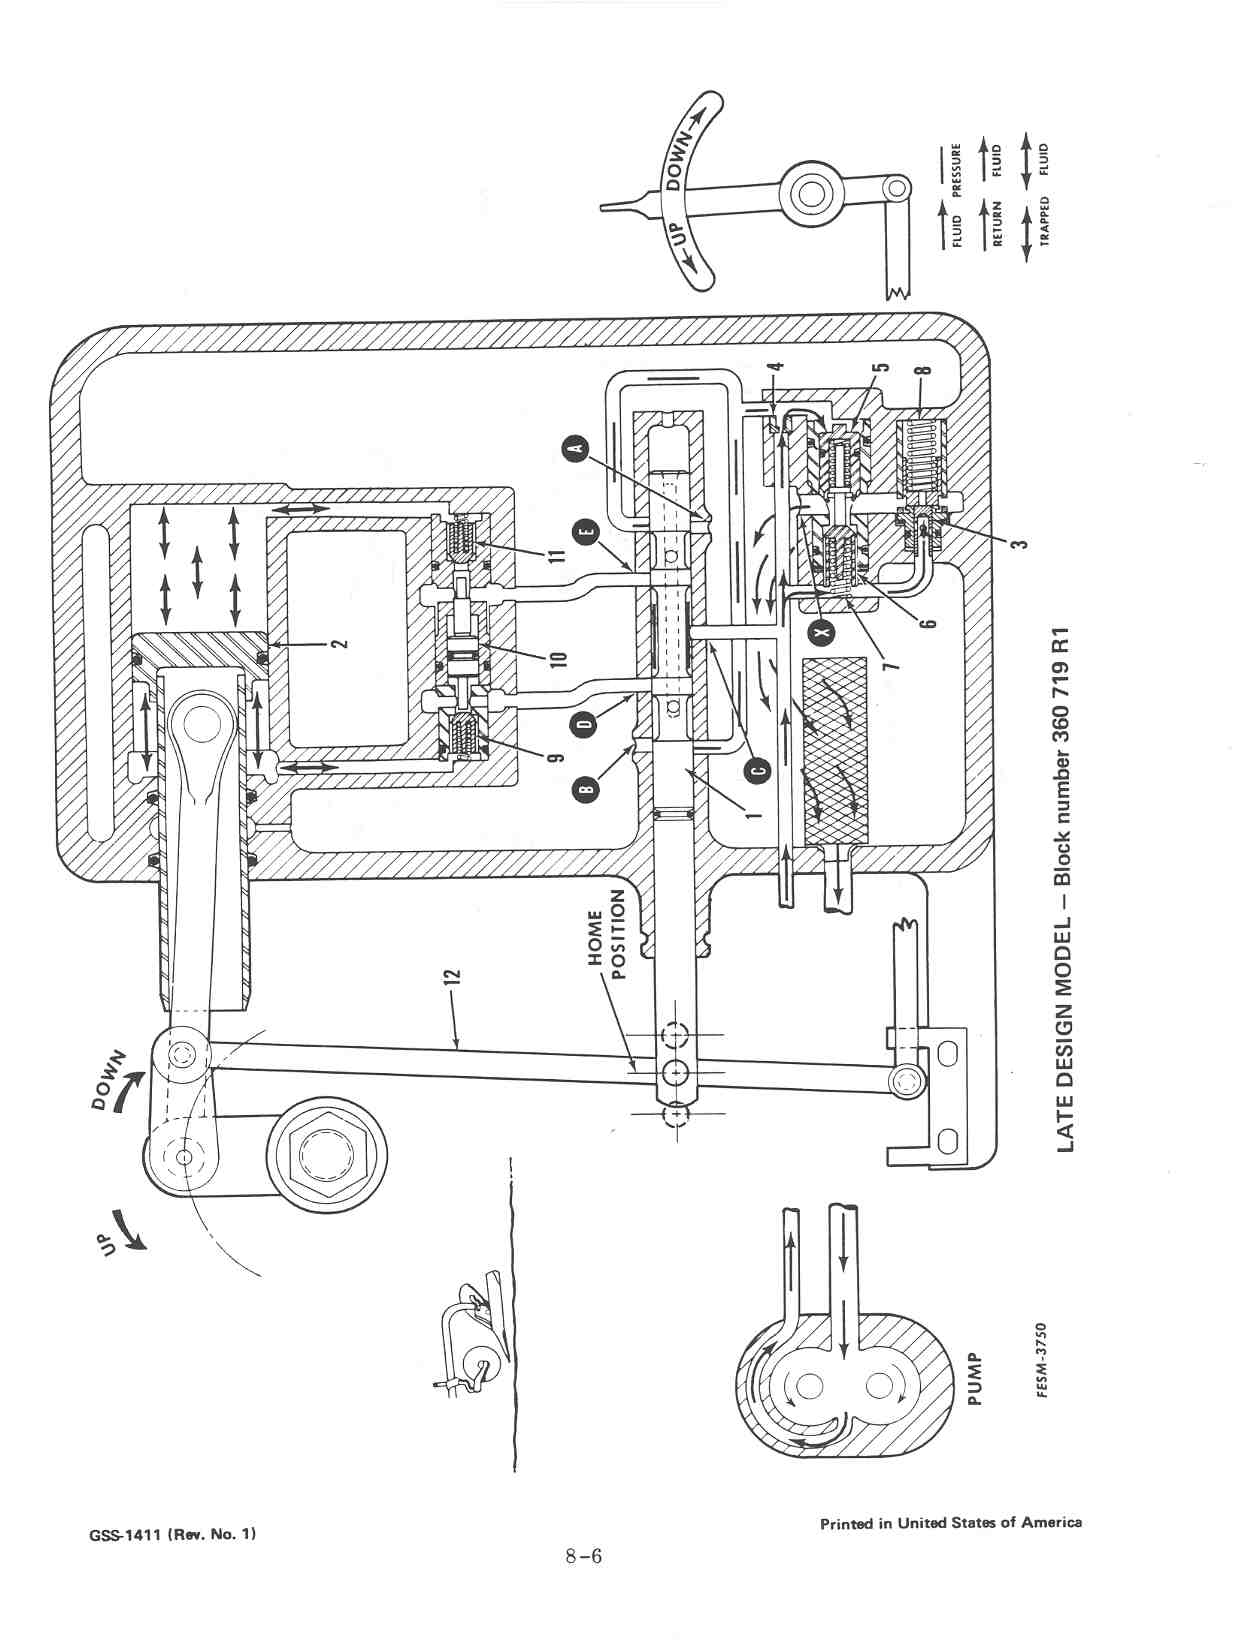 Farmall Cub Touch Control Diagram Electrical Wiring Diagrams Harness Replacement Section 8 Hydraulic System International Tractor